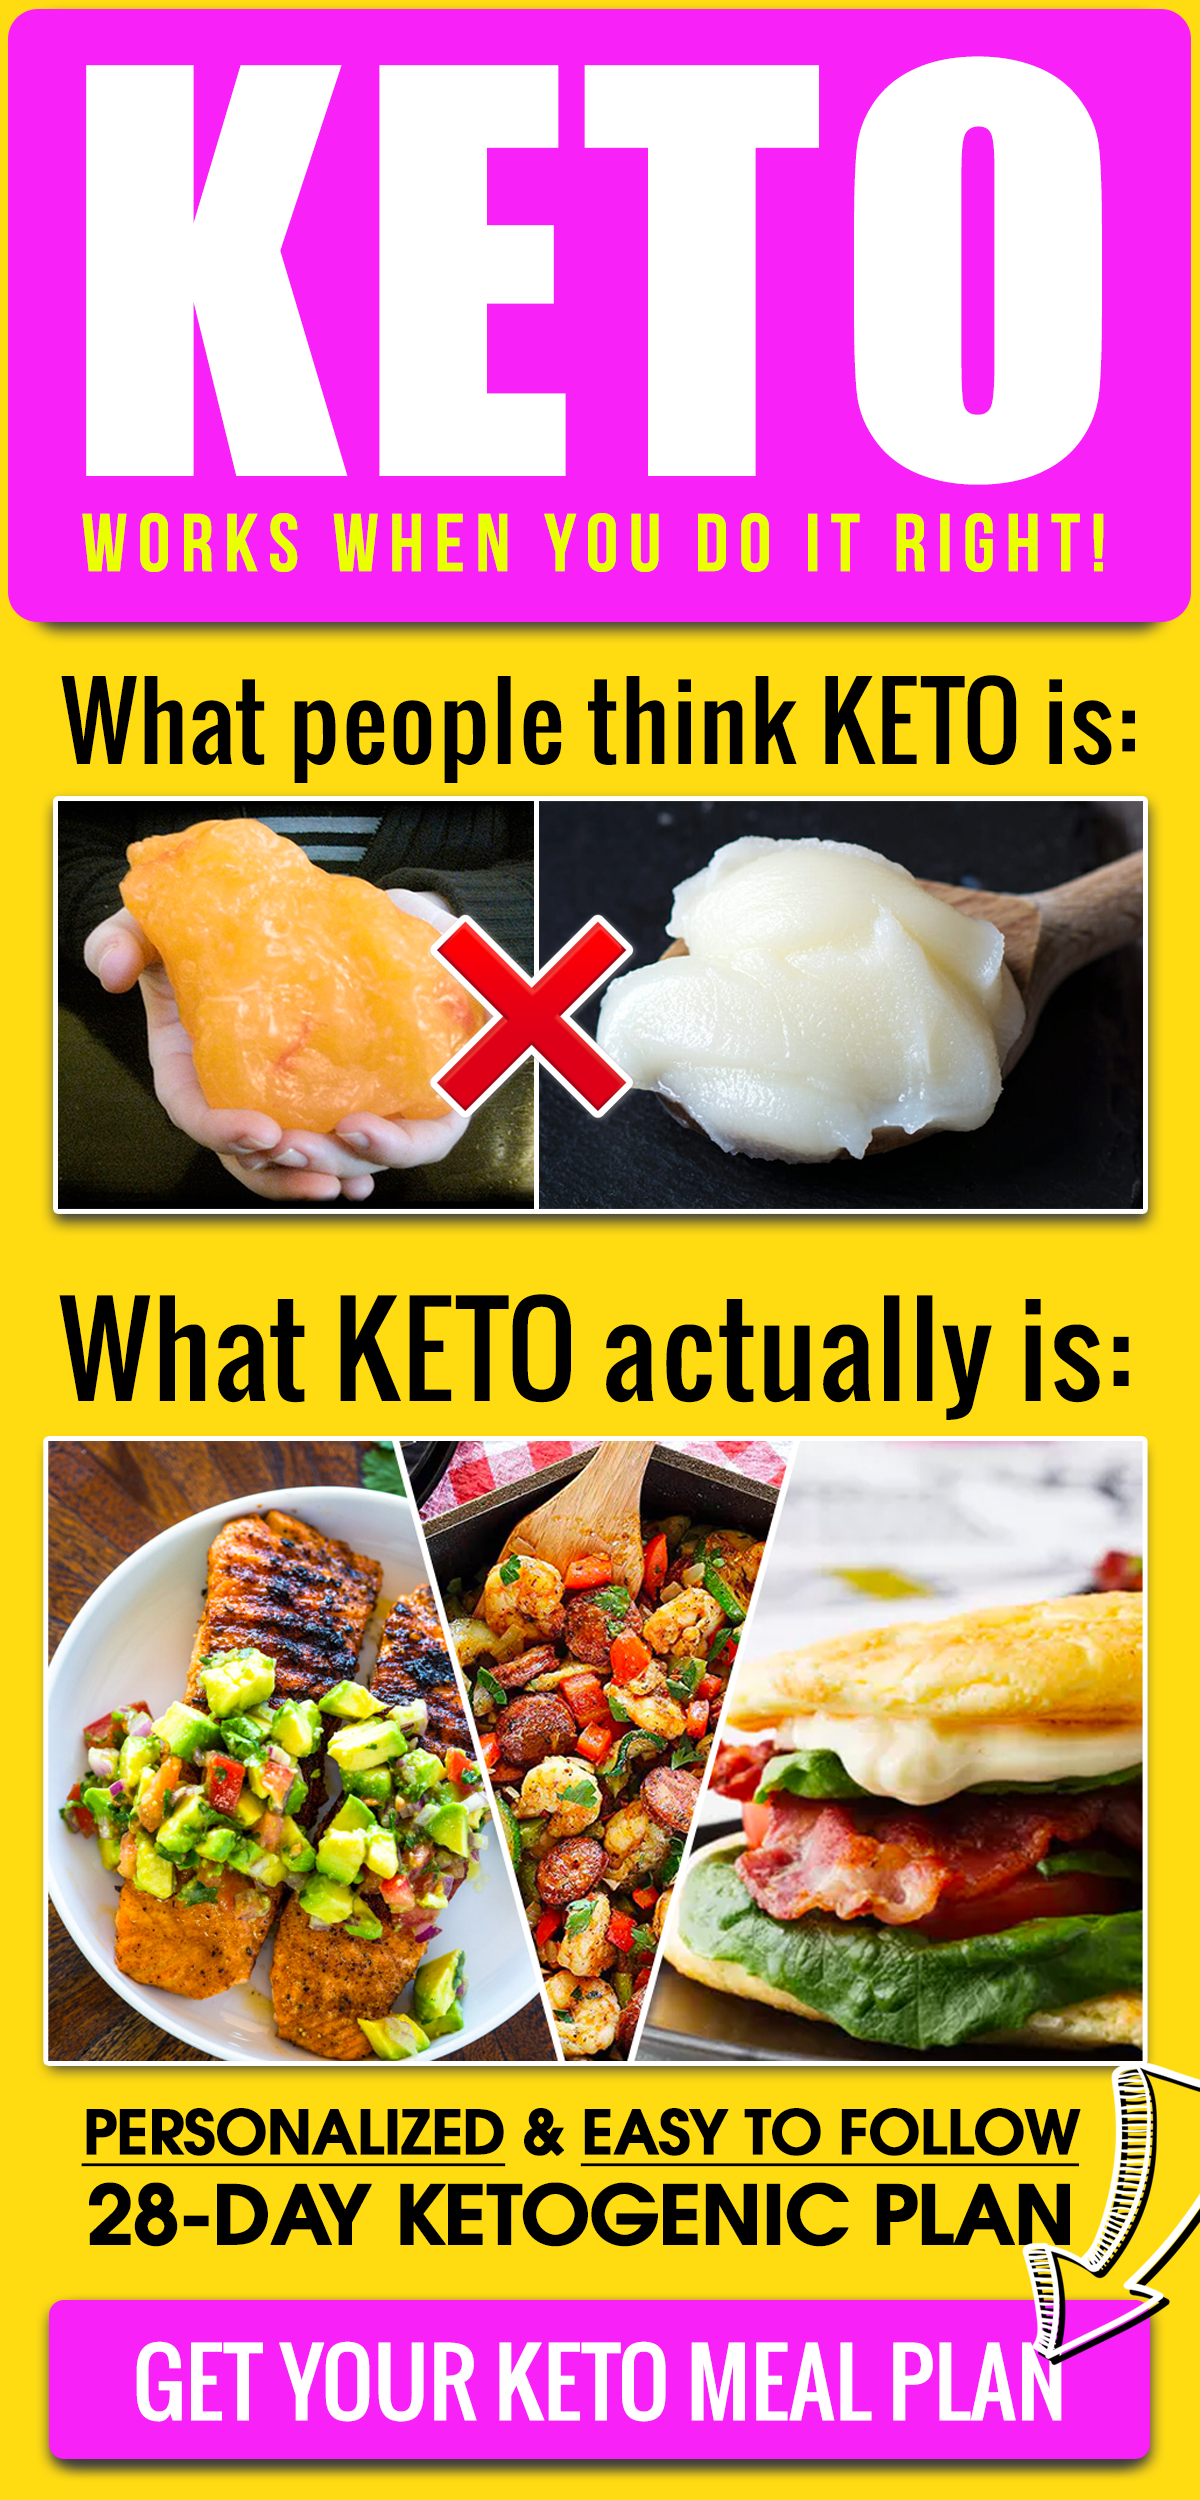 Most People Do Keto Wrong Take This 1 Minute Quiz For A Flexible Plan For Your Goals Ketogenic Diet Meal Plan Ketogenic Diet Calculator Meals